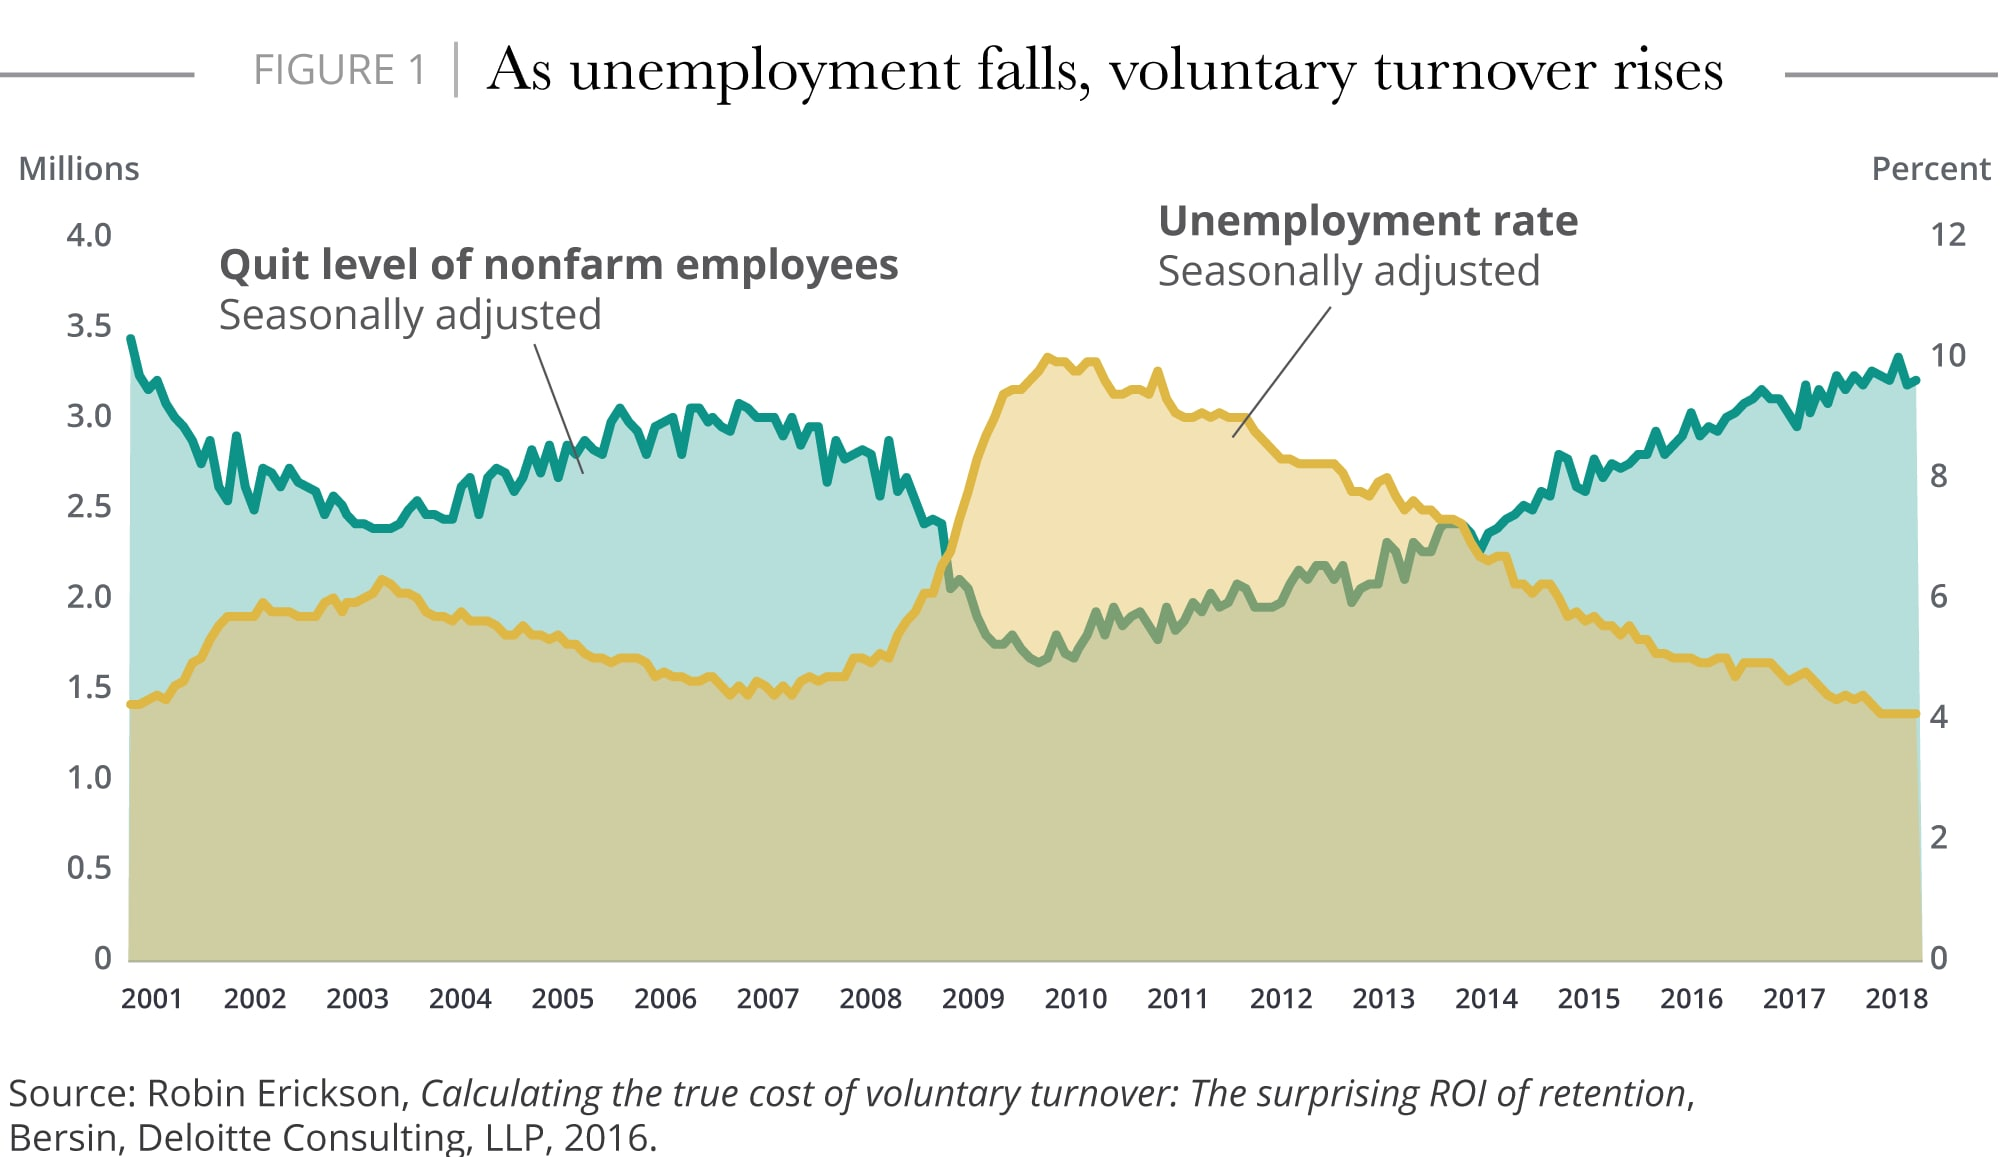 As unemployment falls, voluntary turnover rises